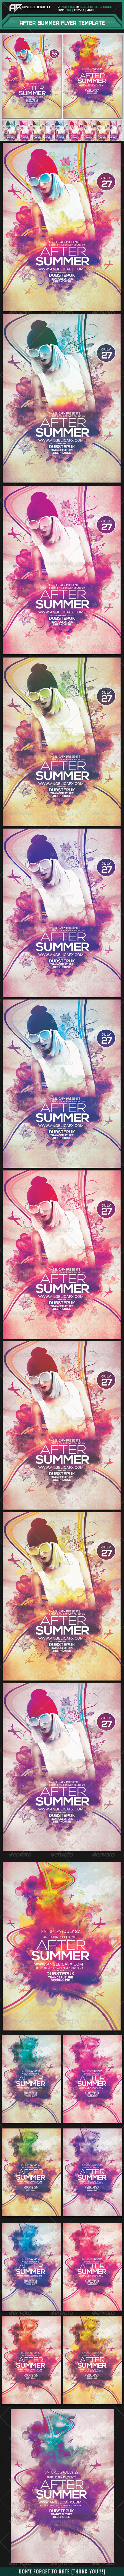 After Summer Flyer/Poster Template